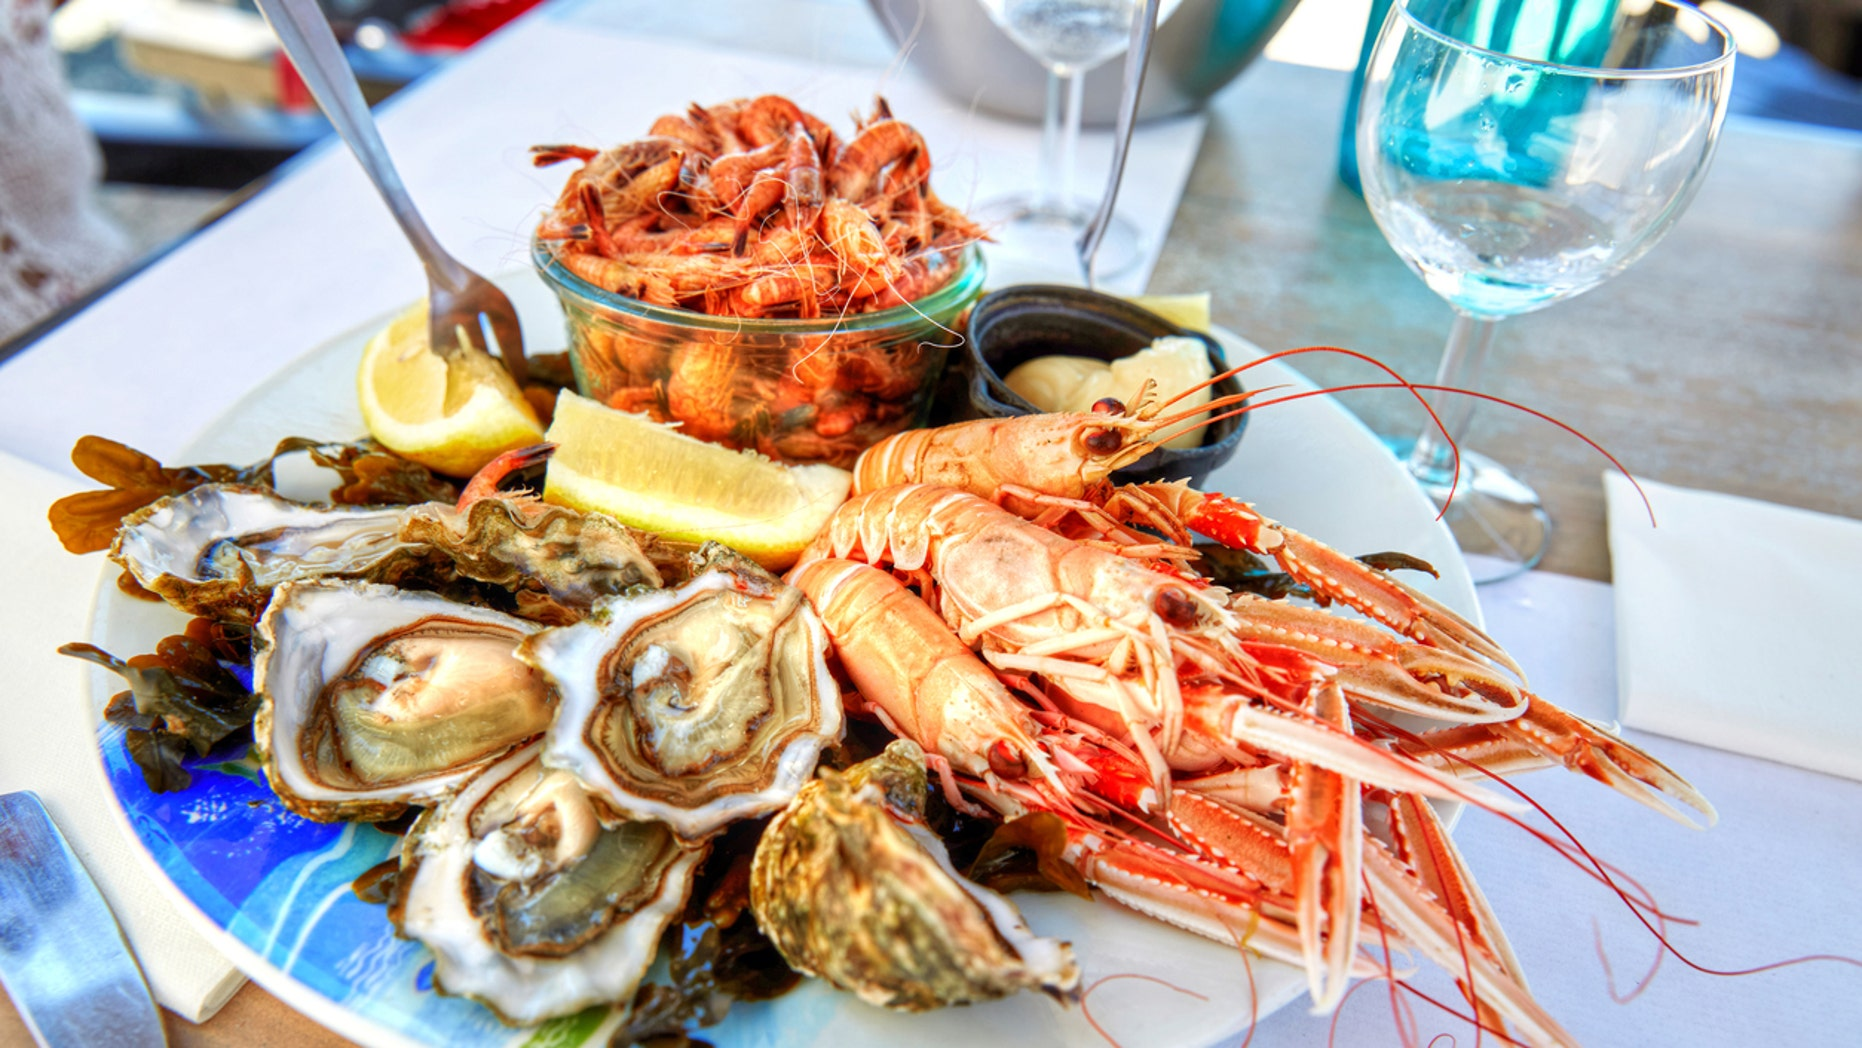 Homemade lunch plate of shellfish